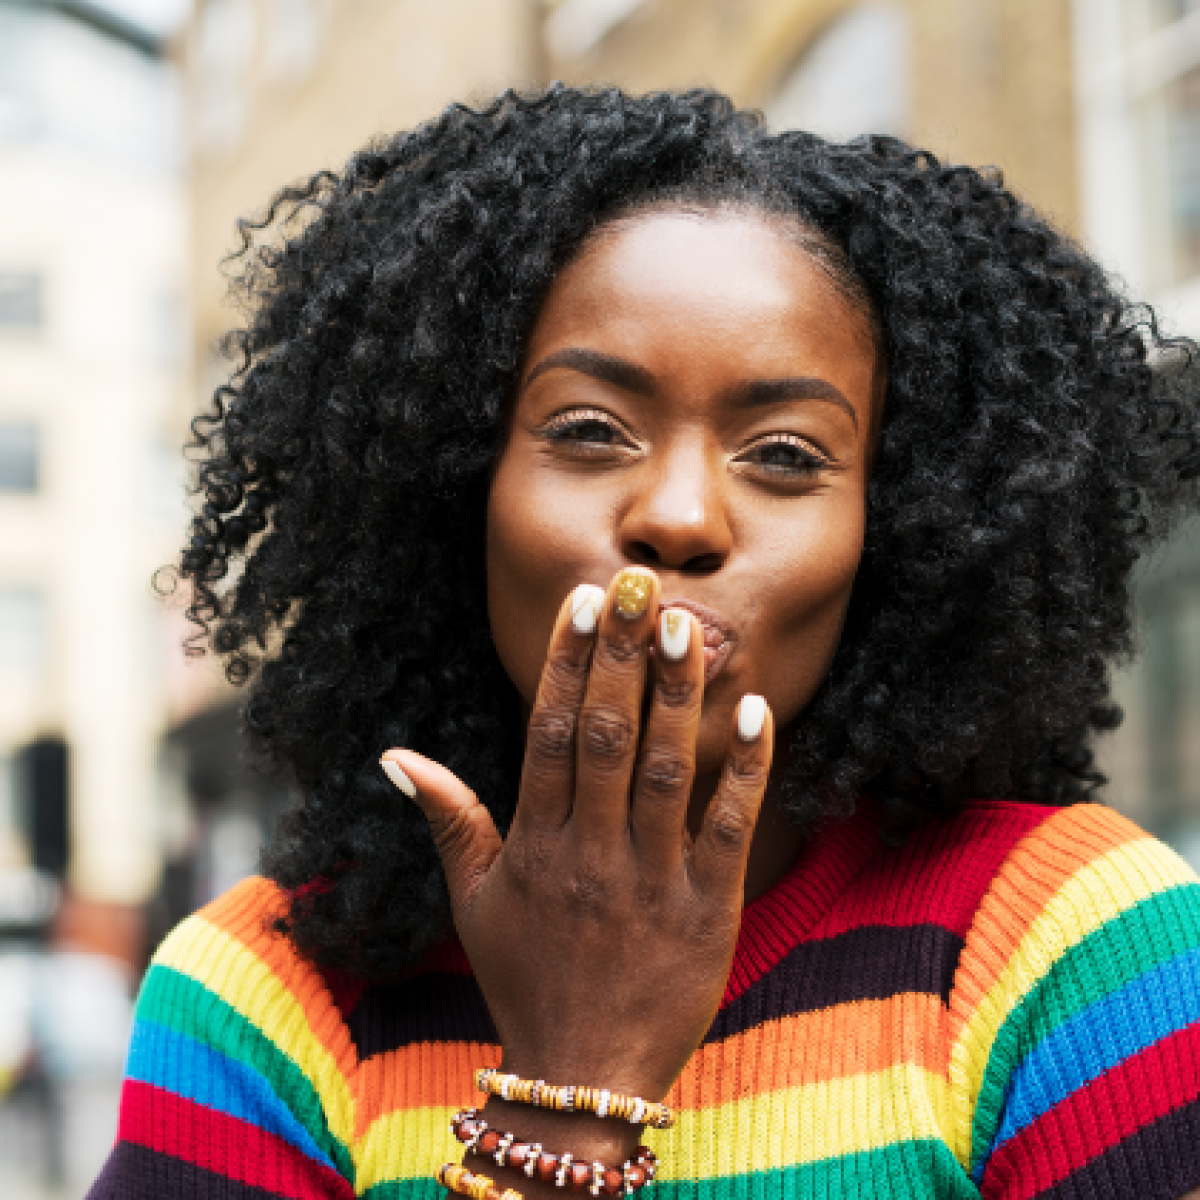 Show Your Pride With These Stunning Nail Designs